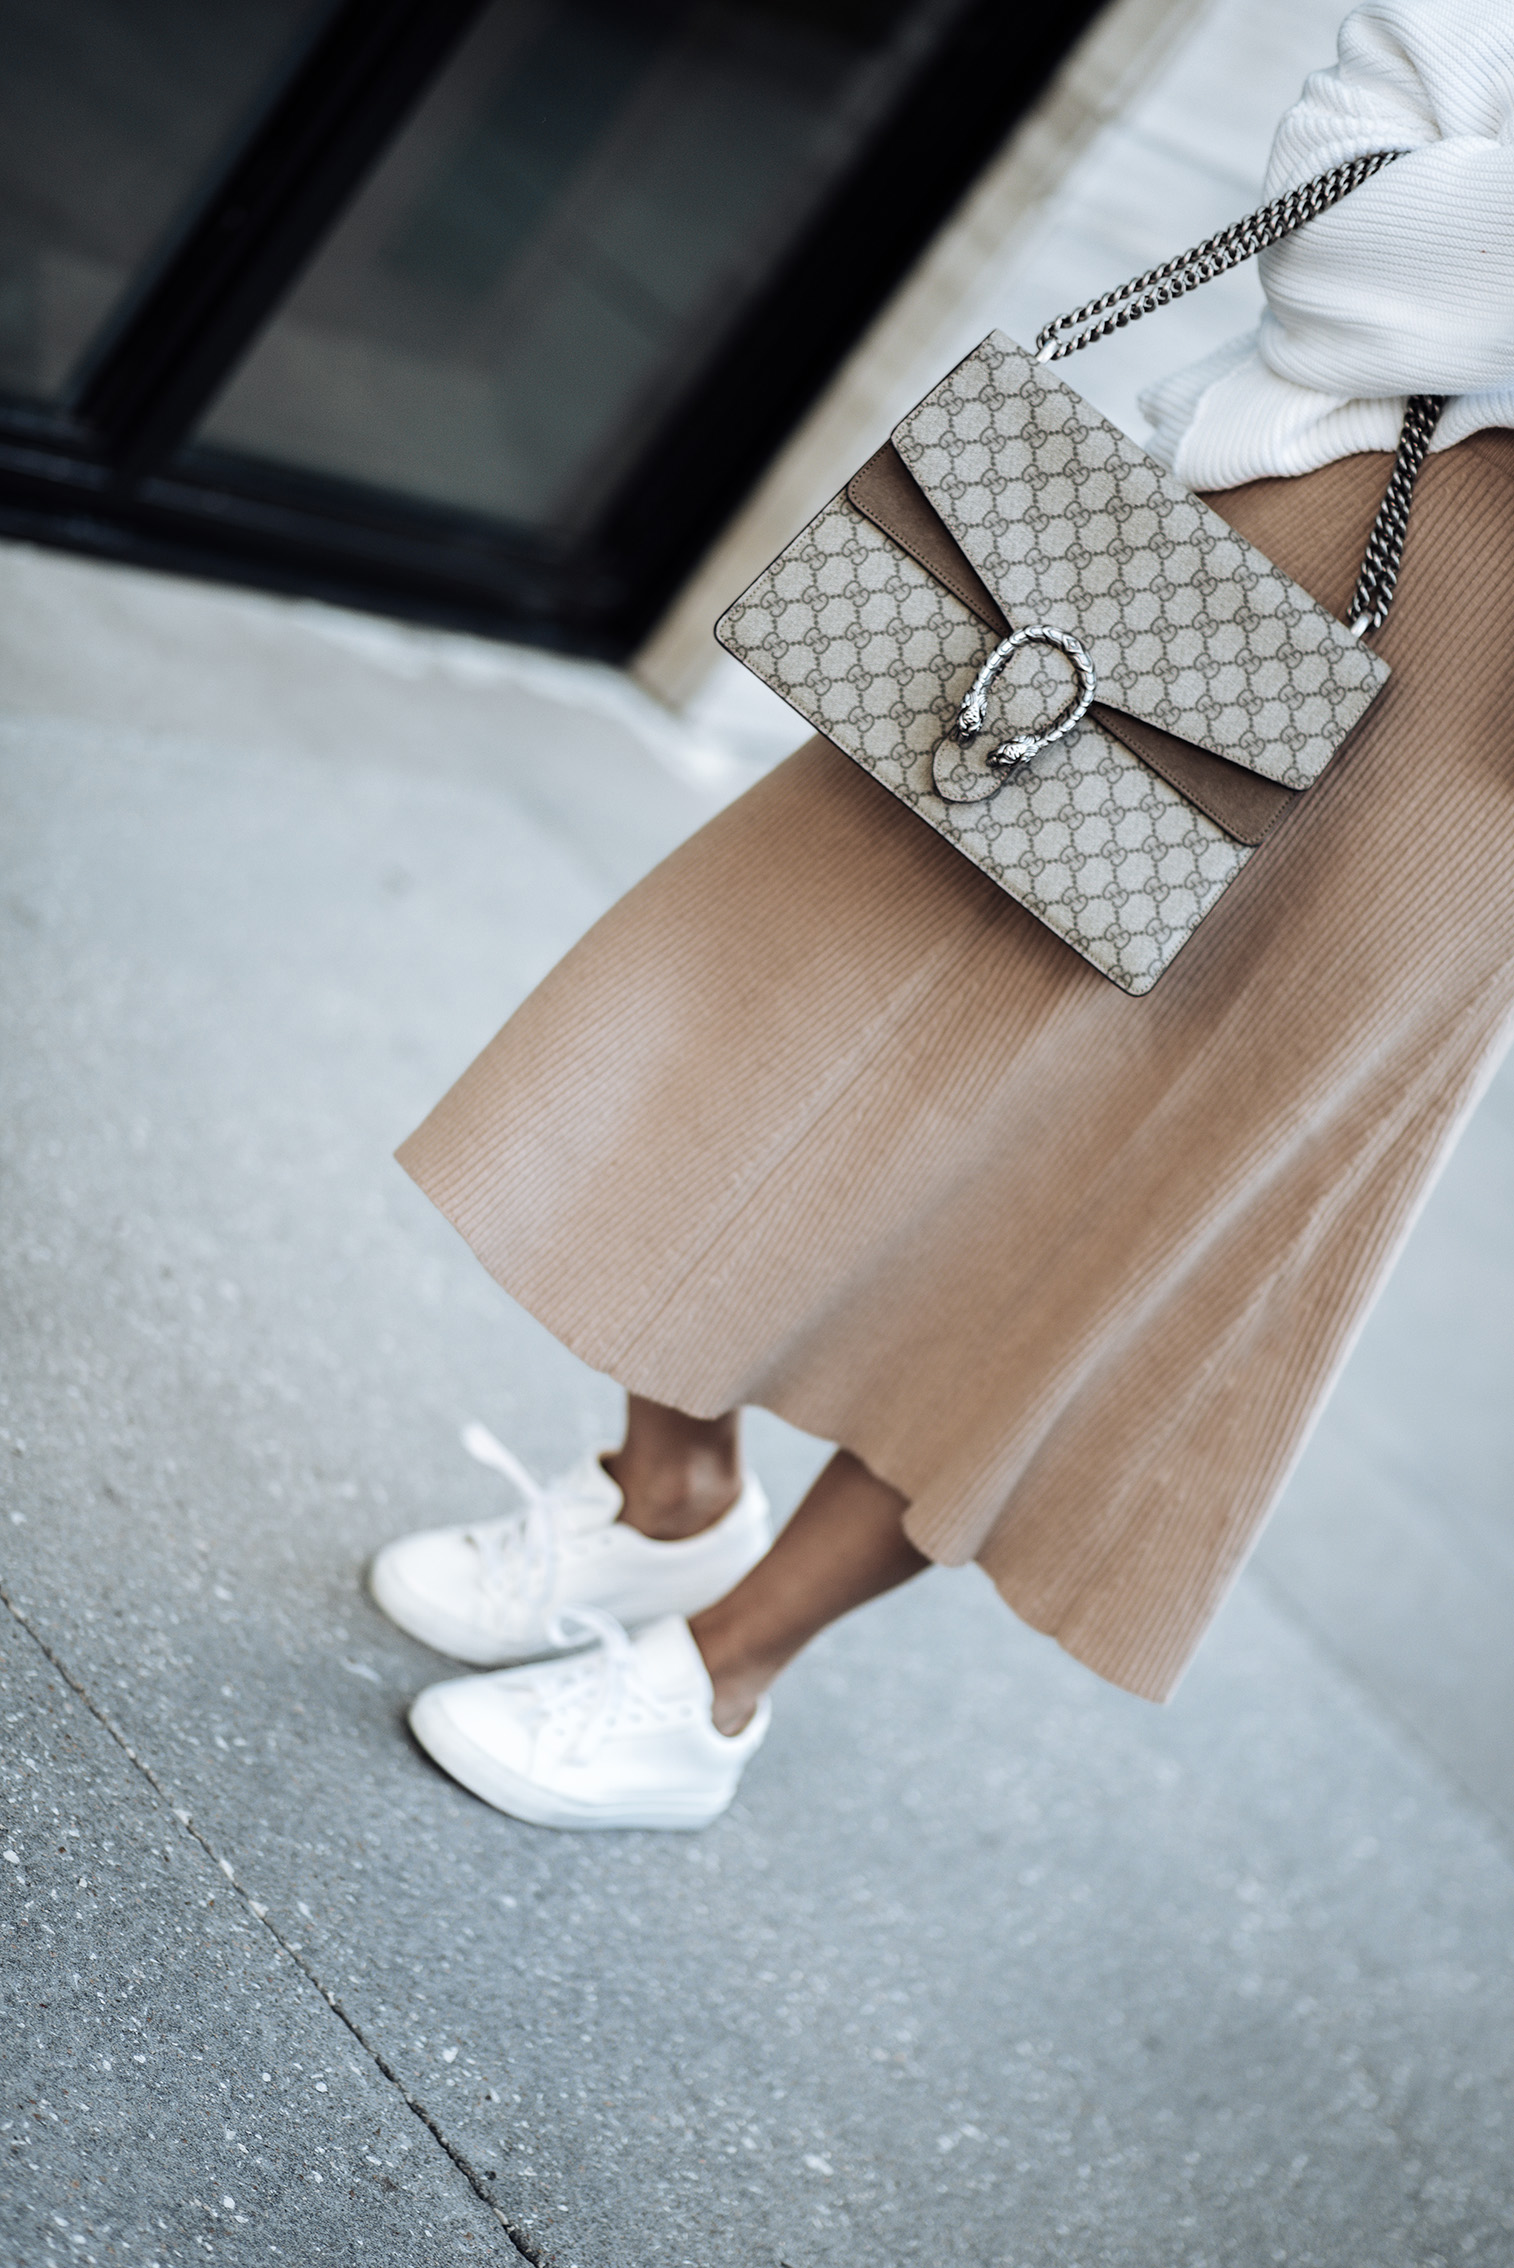 Tiffany Jais fashion and lifestyle blogger of Flaunt and Center | Houston fashion blogger | Cozy Knits | Streetstyle blog |Italian Superloft Midi Sweater Skirt | Free People La Brea Sweater | The Royal sneaker | Large Gucci Dionysus